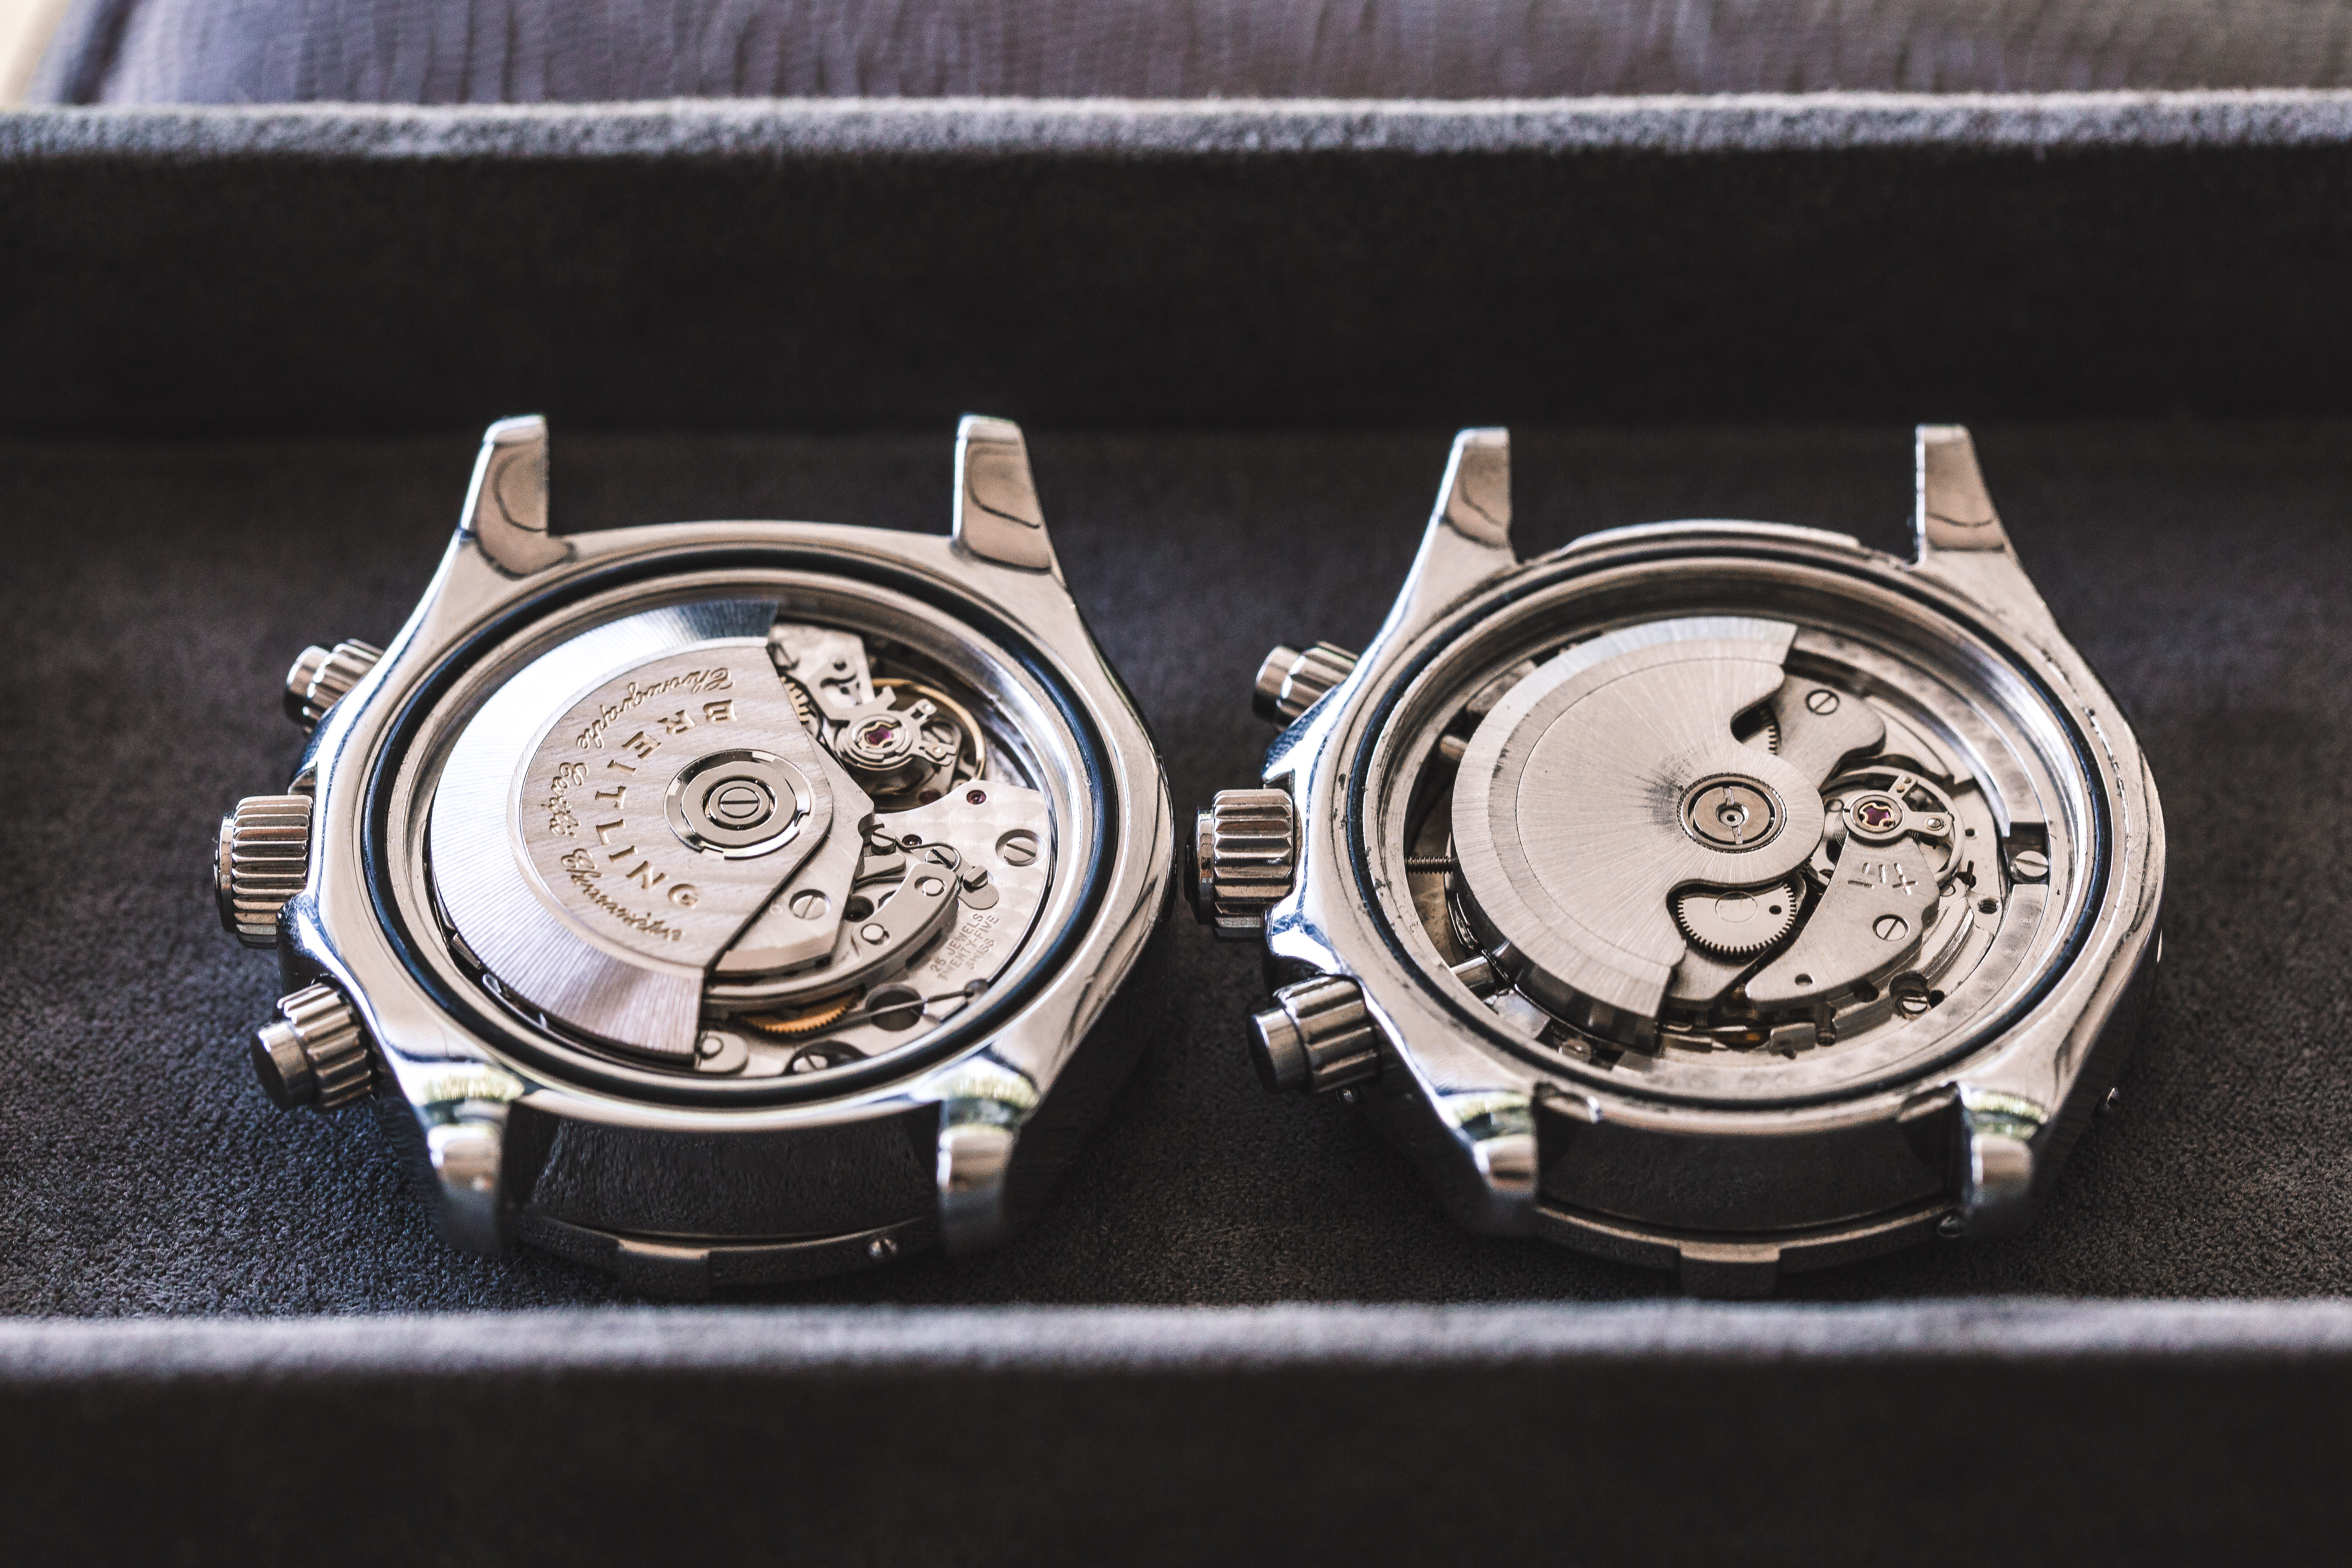 Movement Replica Swiss Watch The Attack Of The Superfakes Techcrunch